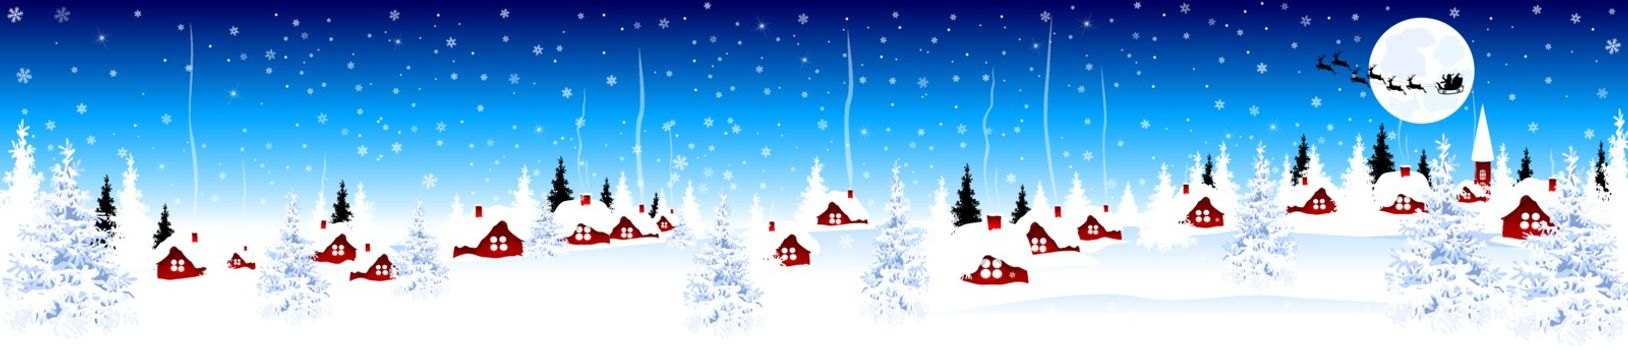 Little village on Christmas Eve on blue winter background. Snow-covered village. Night scene of winter rural landscape on Christmas Eve.